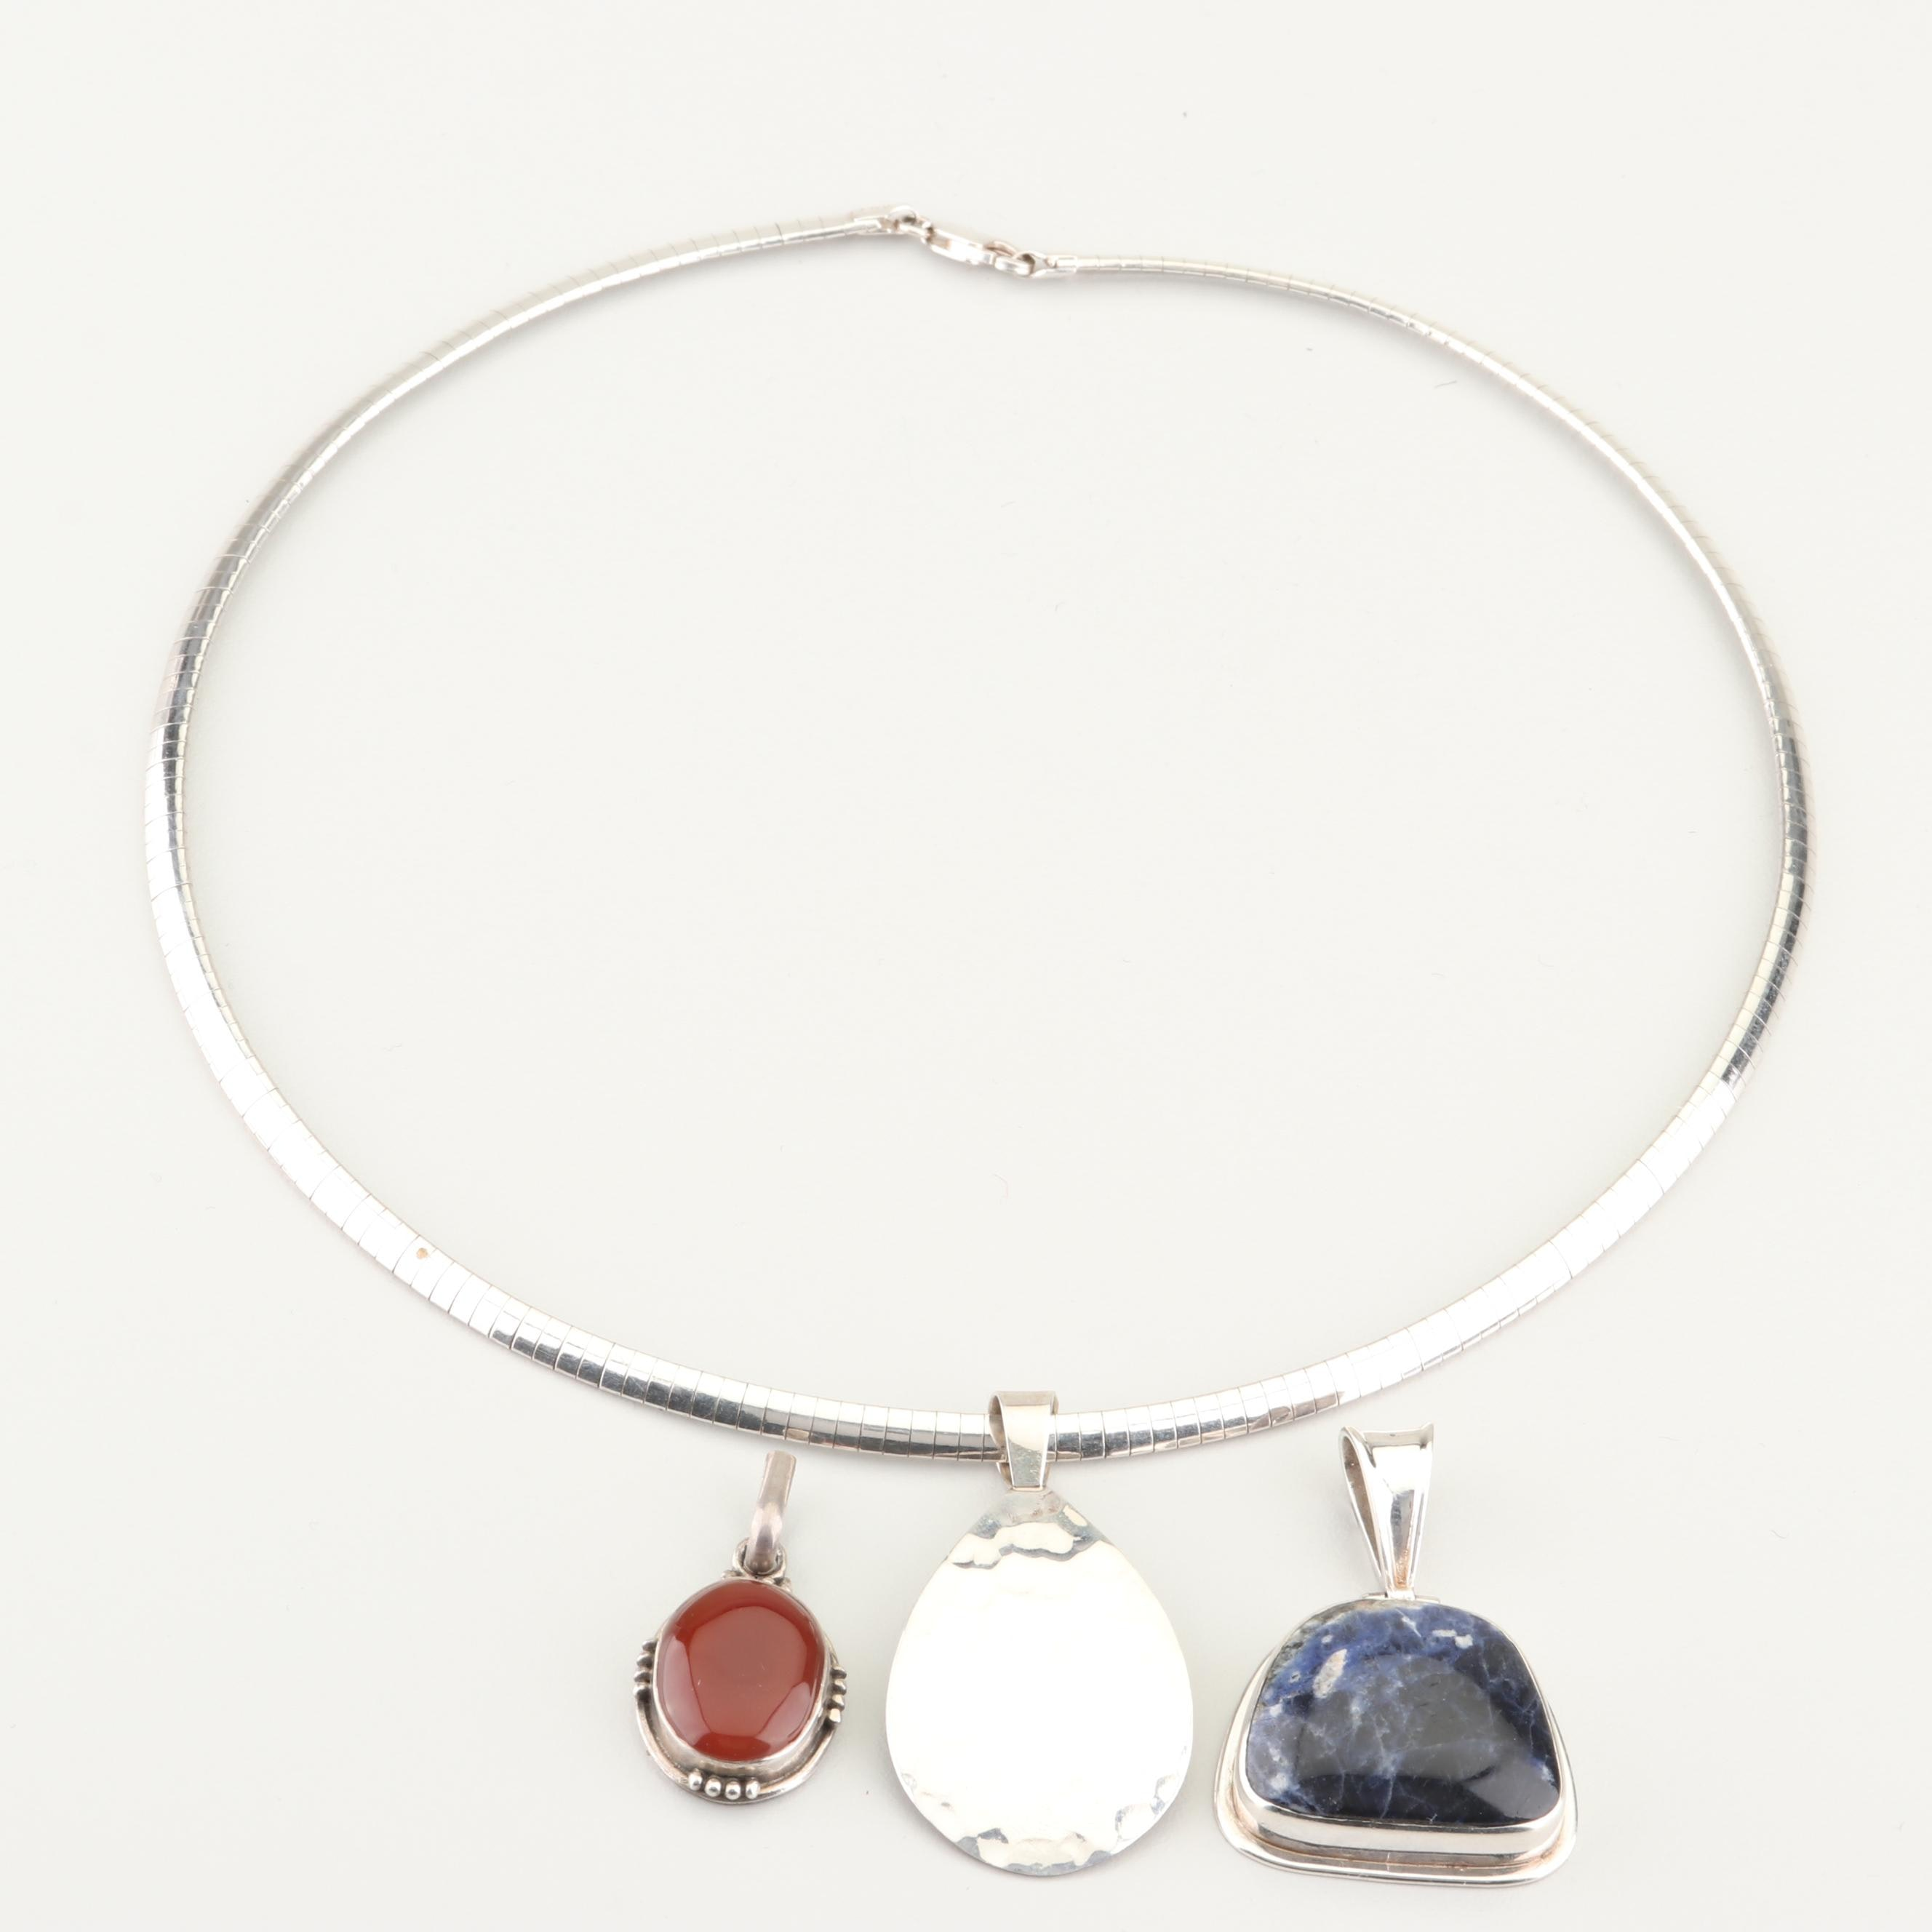 Sterling Silver, Sodalite, and Carnelian Pendants with Chain Necklace